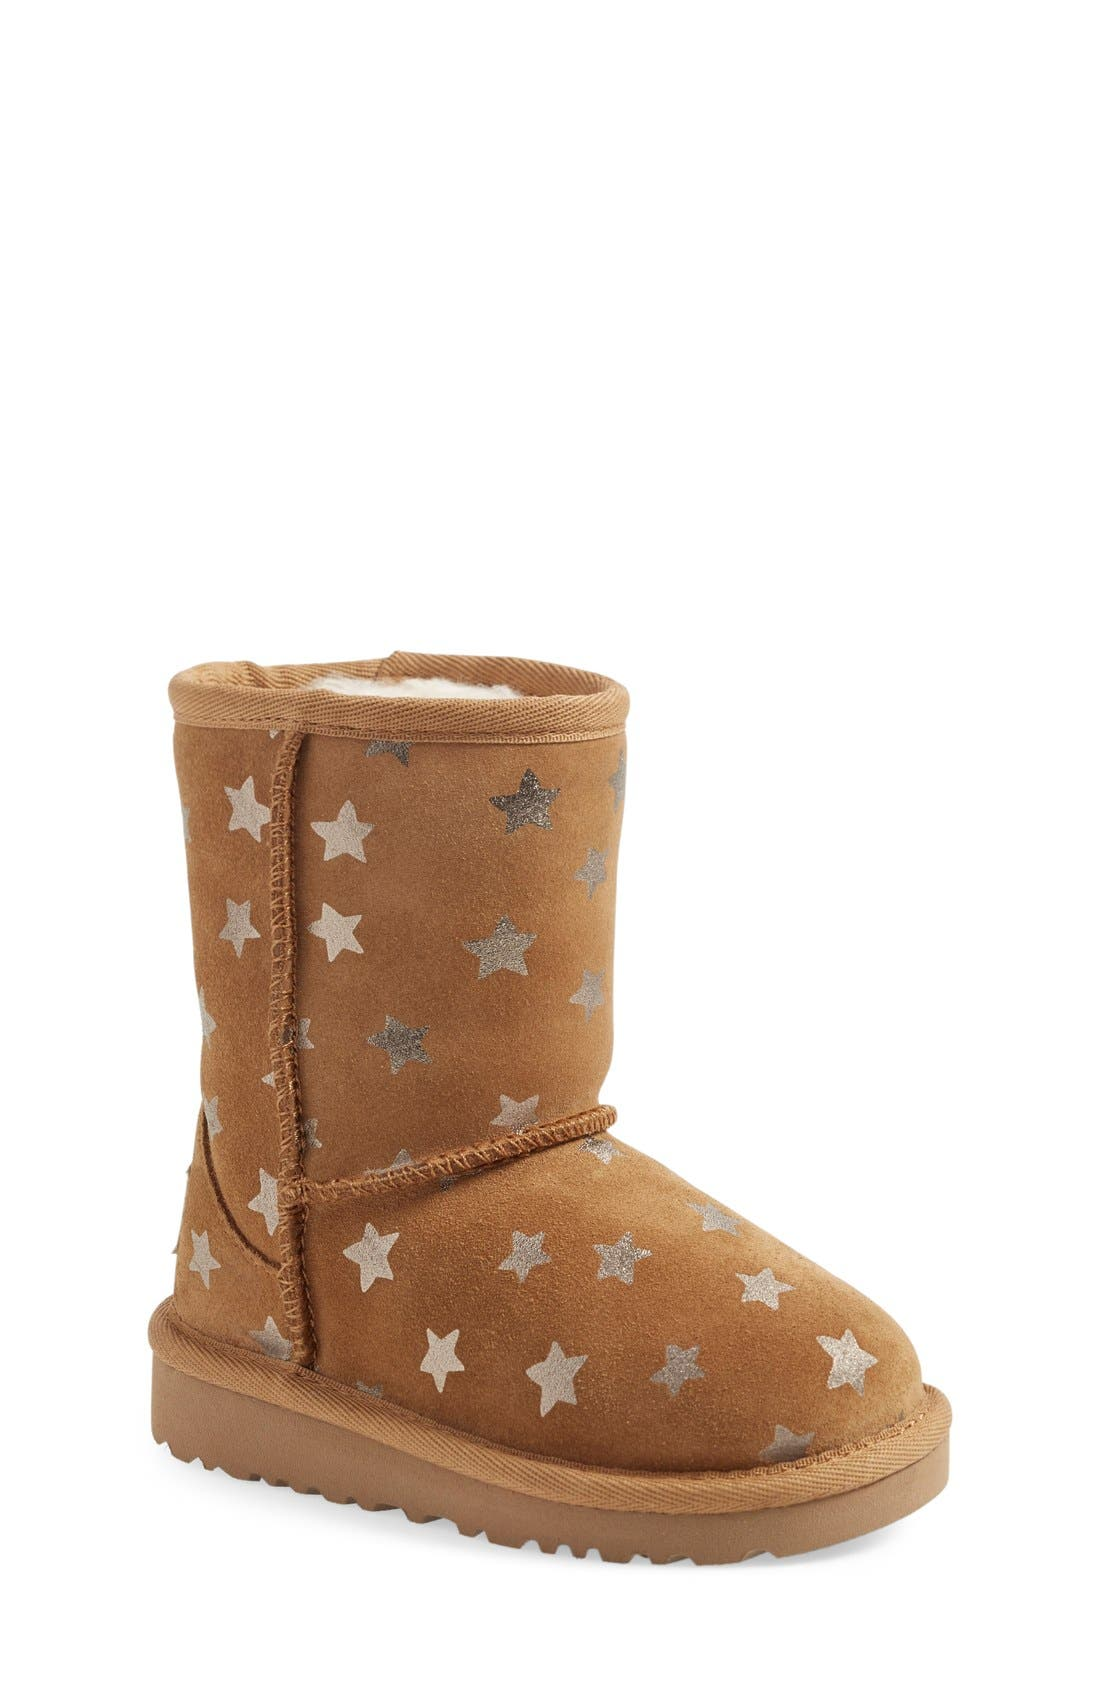 Alternate Image 1 Selected - UGG® Classic - Stars Short Boot (Walker) (Nordstrom Exclusive)